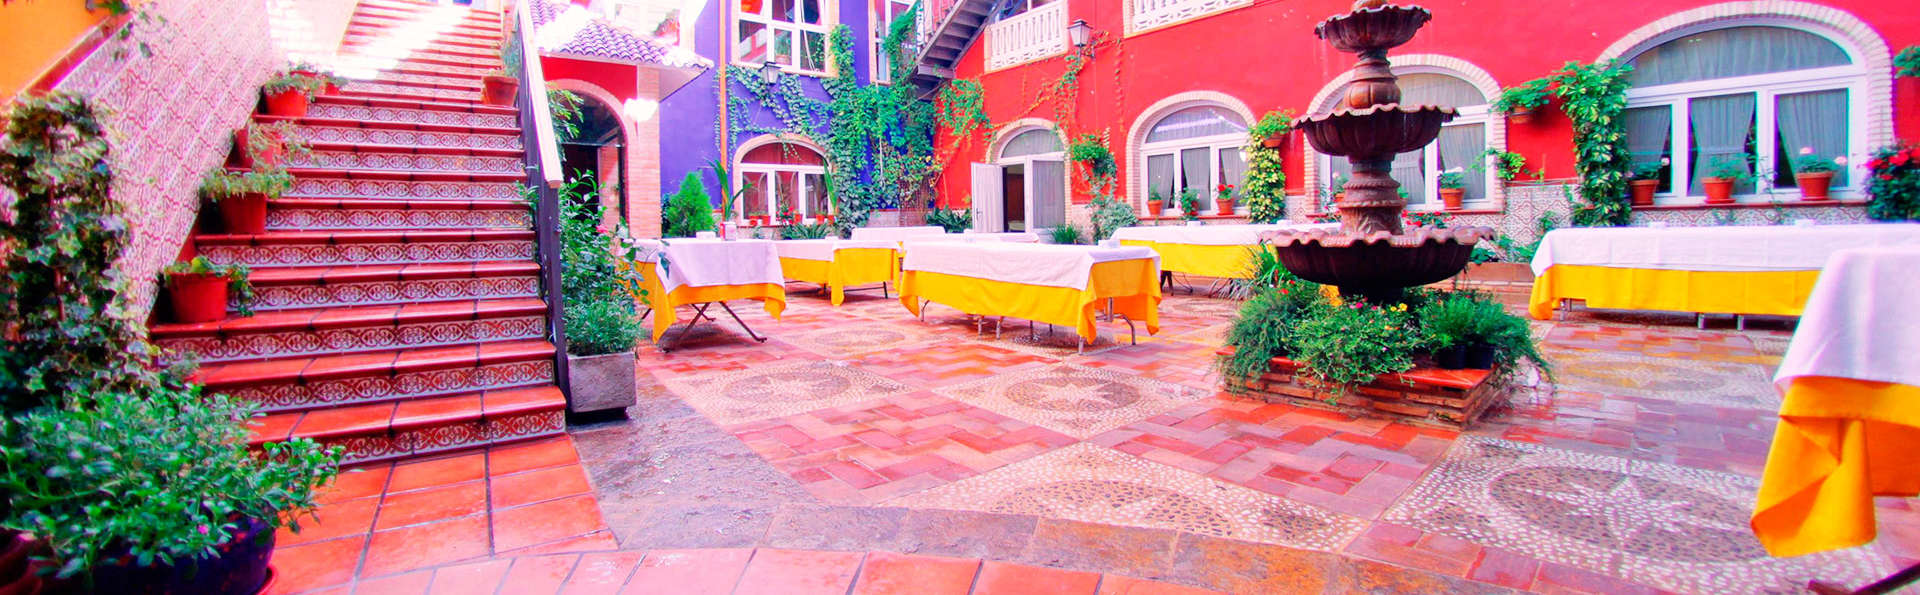 Hotel Plaza Manjón - EDIT_patio.jpg